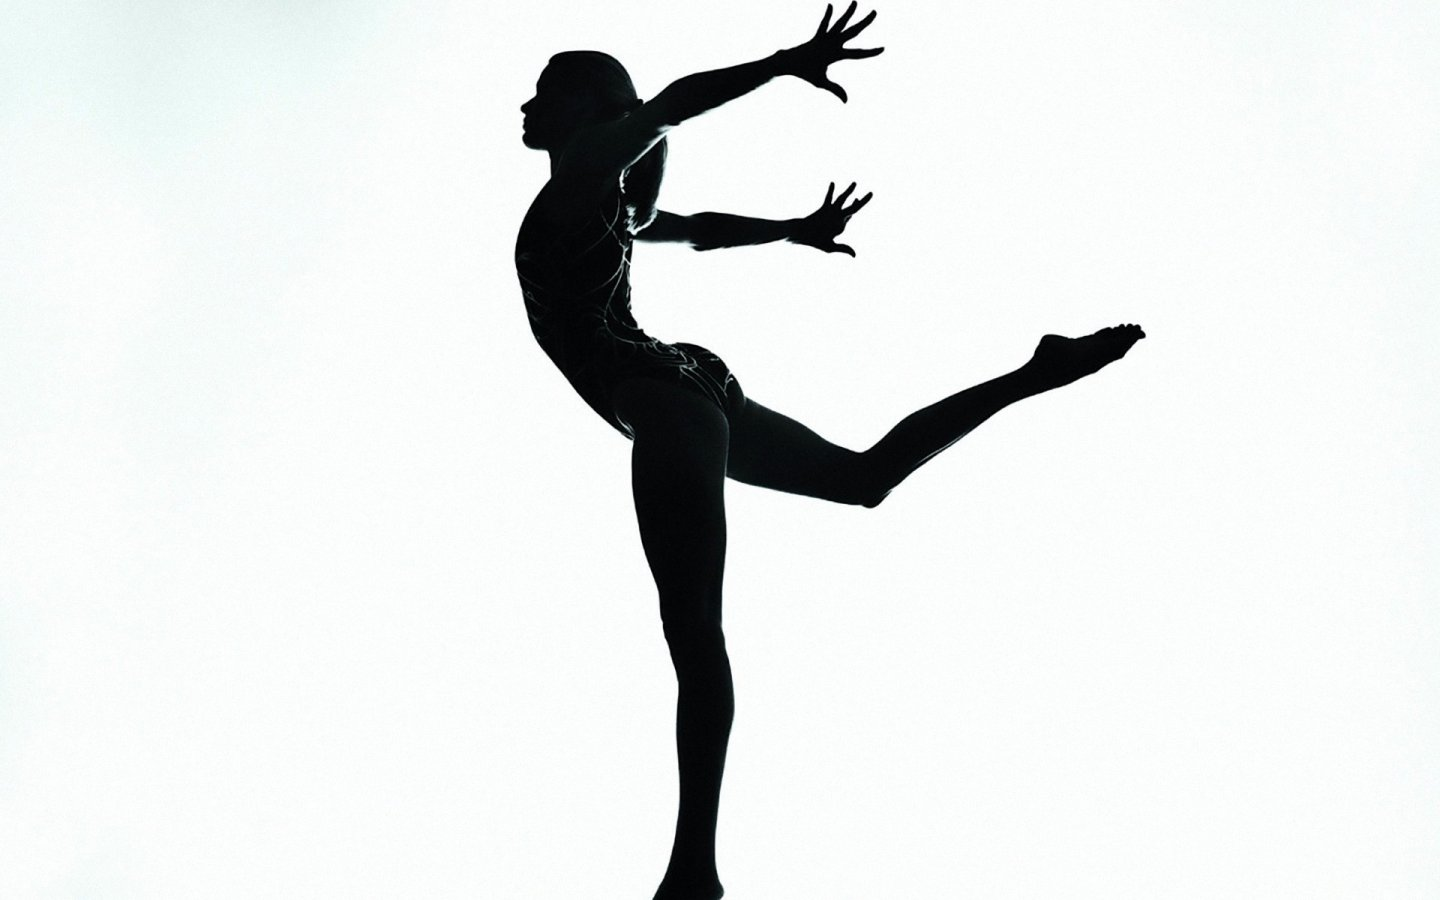 Gymnastics clip art silhouette free clipart images.